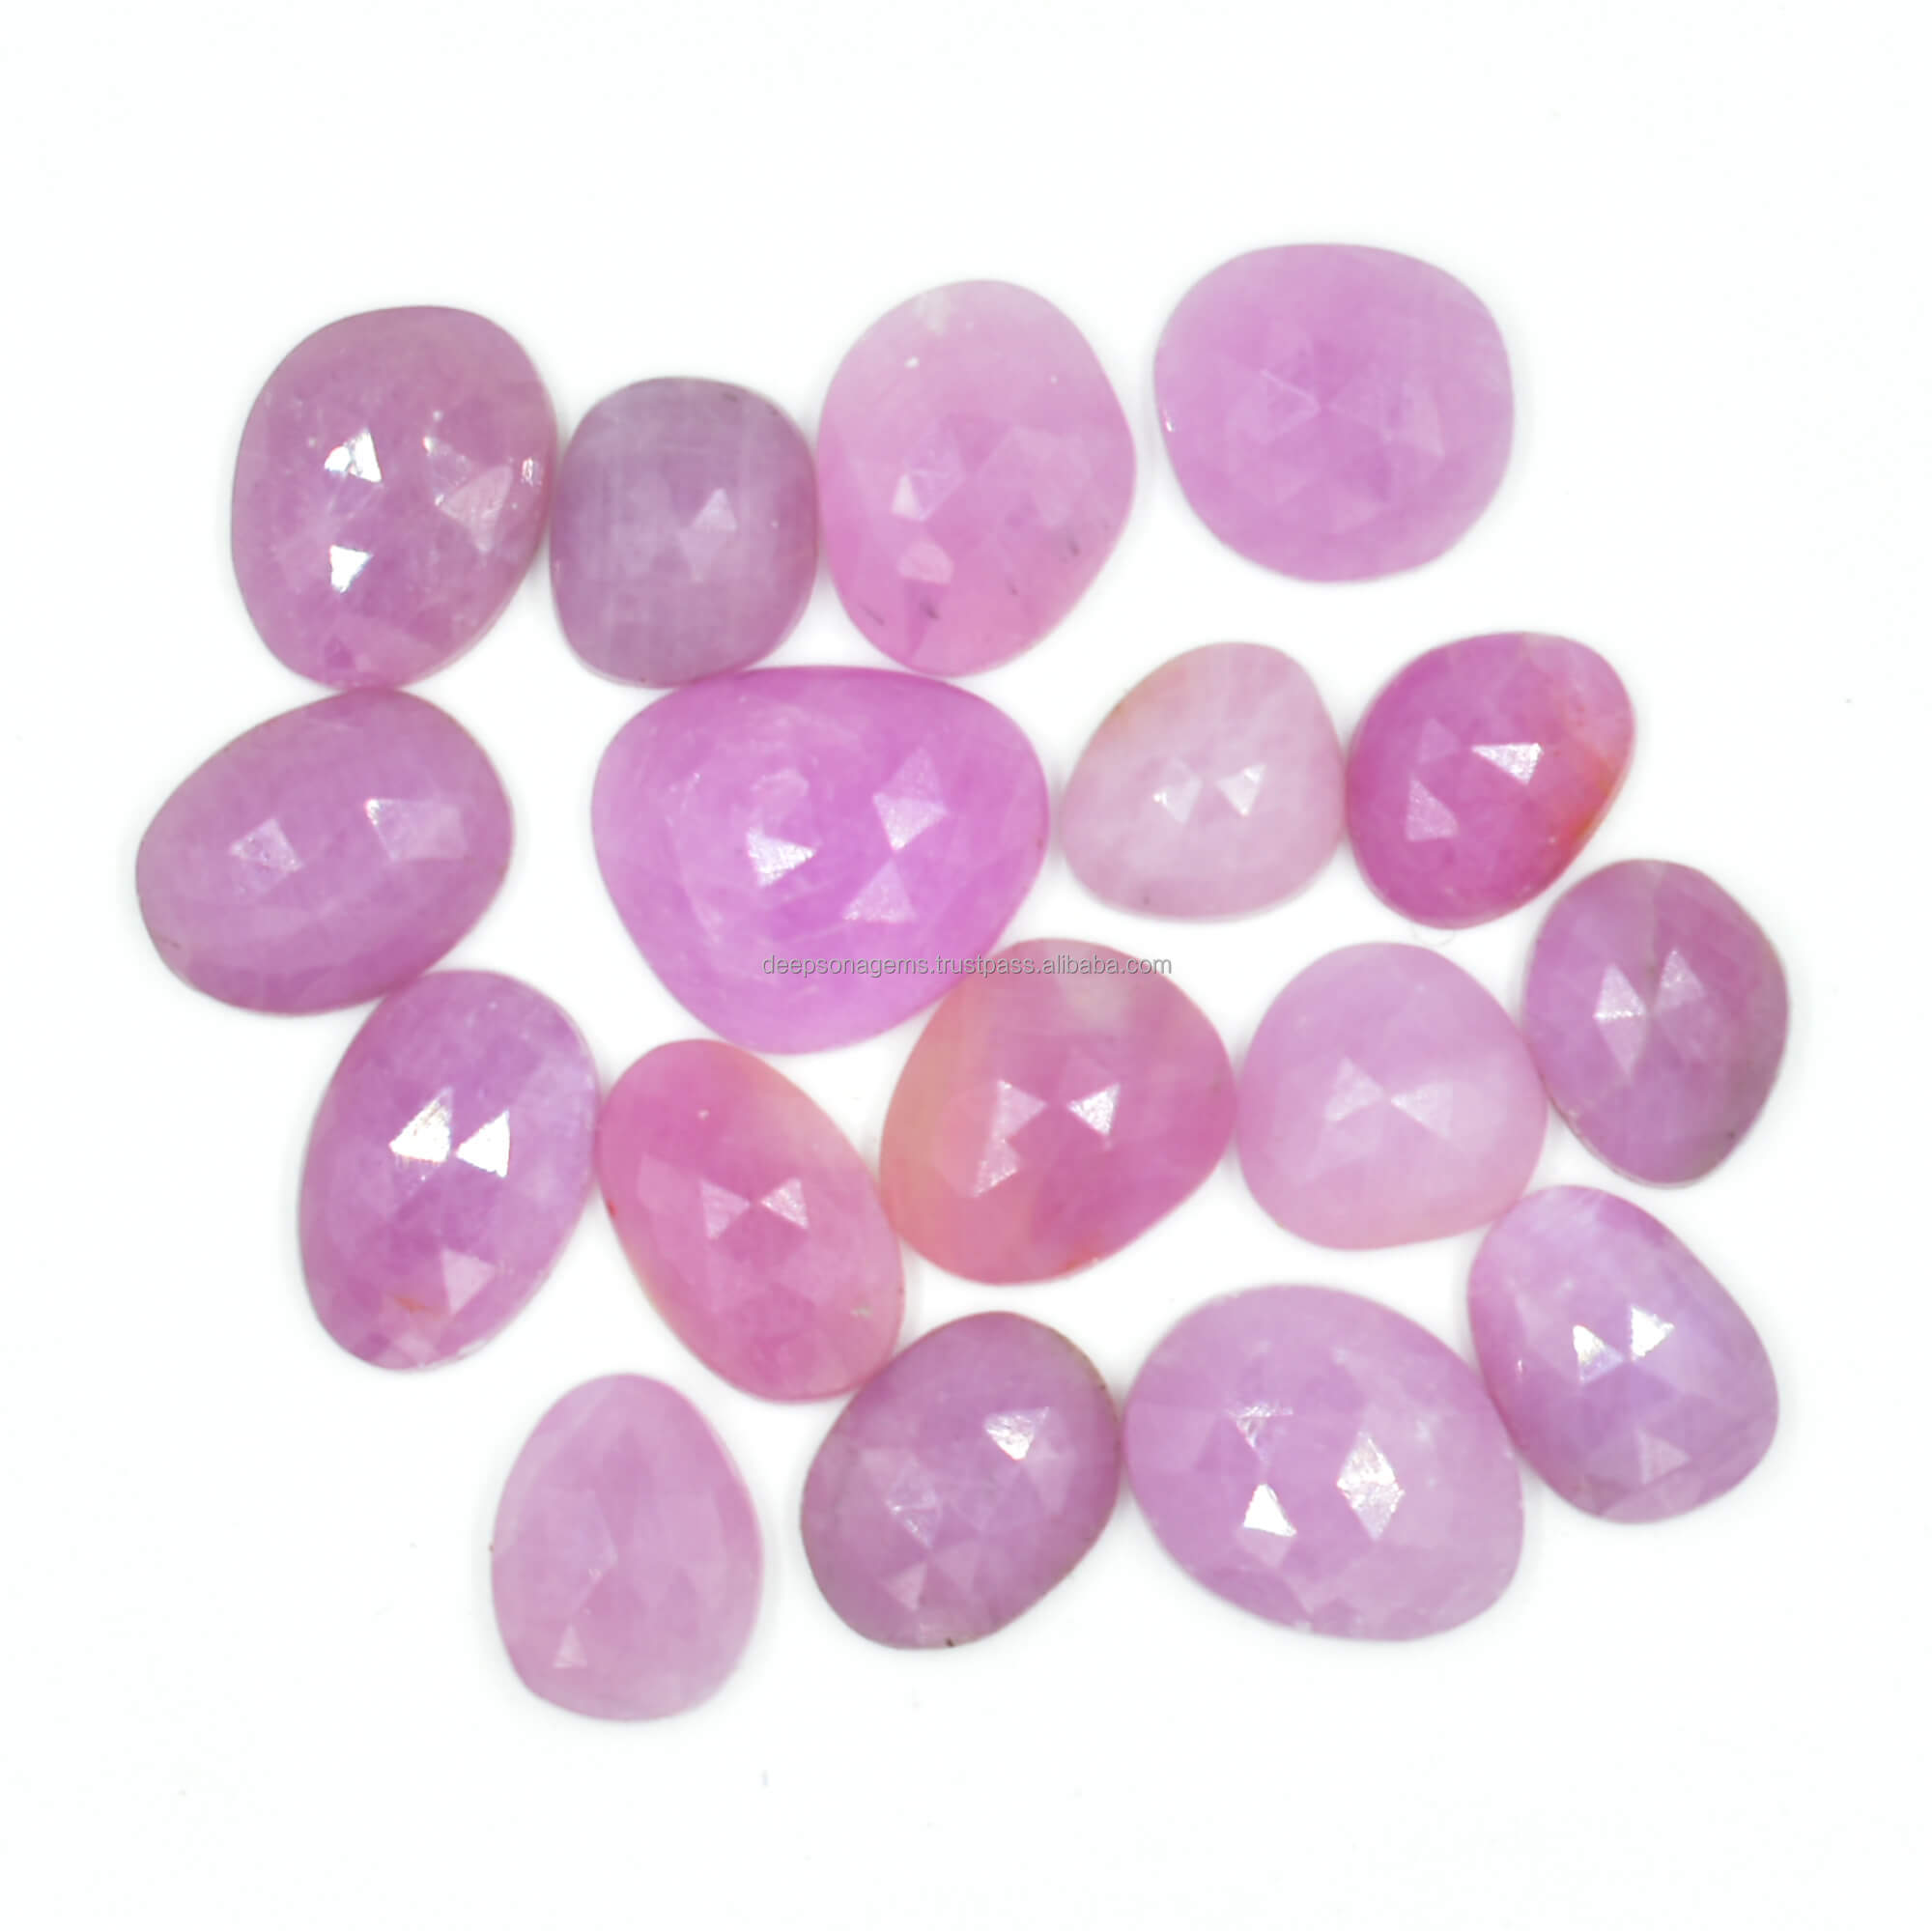 8x6 MM, Pink Sapphire Slices Pink Sapphire Faceted Slices Pink Sapphire Pear Slices Natural Pink Sapphire Rose Cut Slices